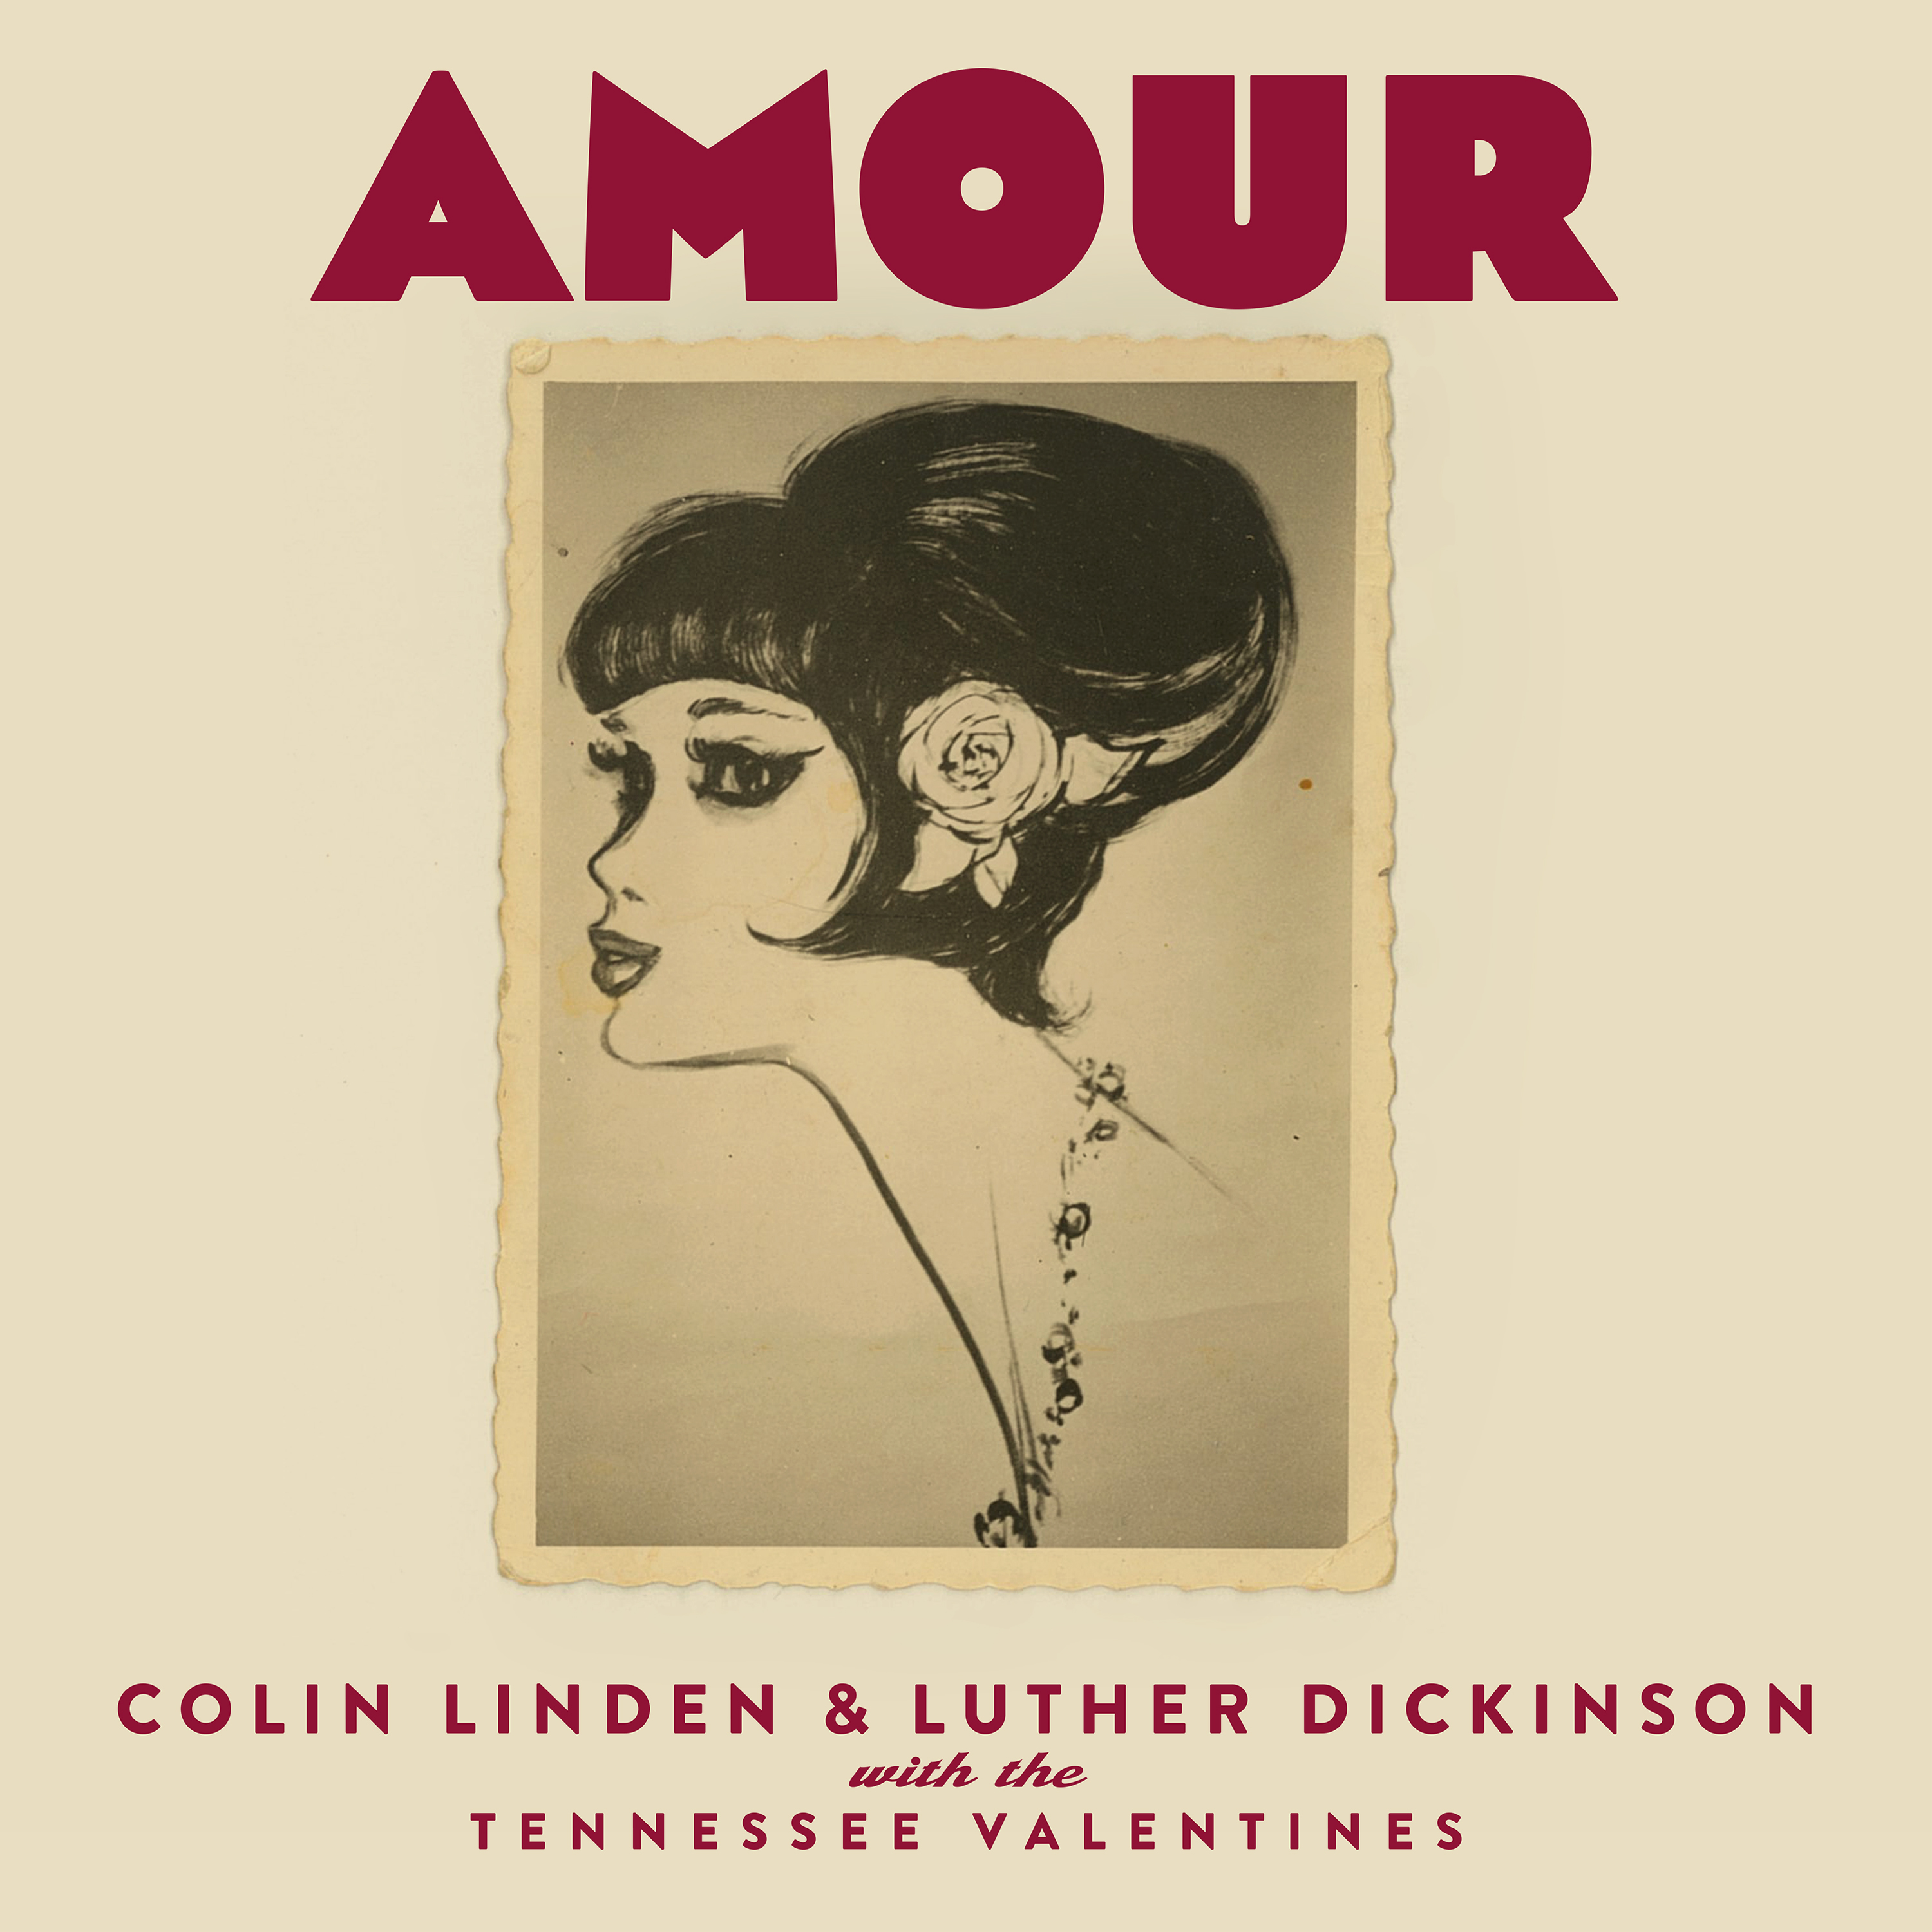 Colin Linden and Luther Dickinson Join Forces on Amour